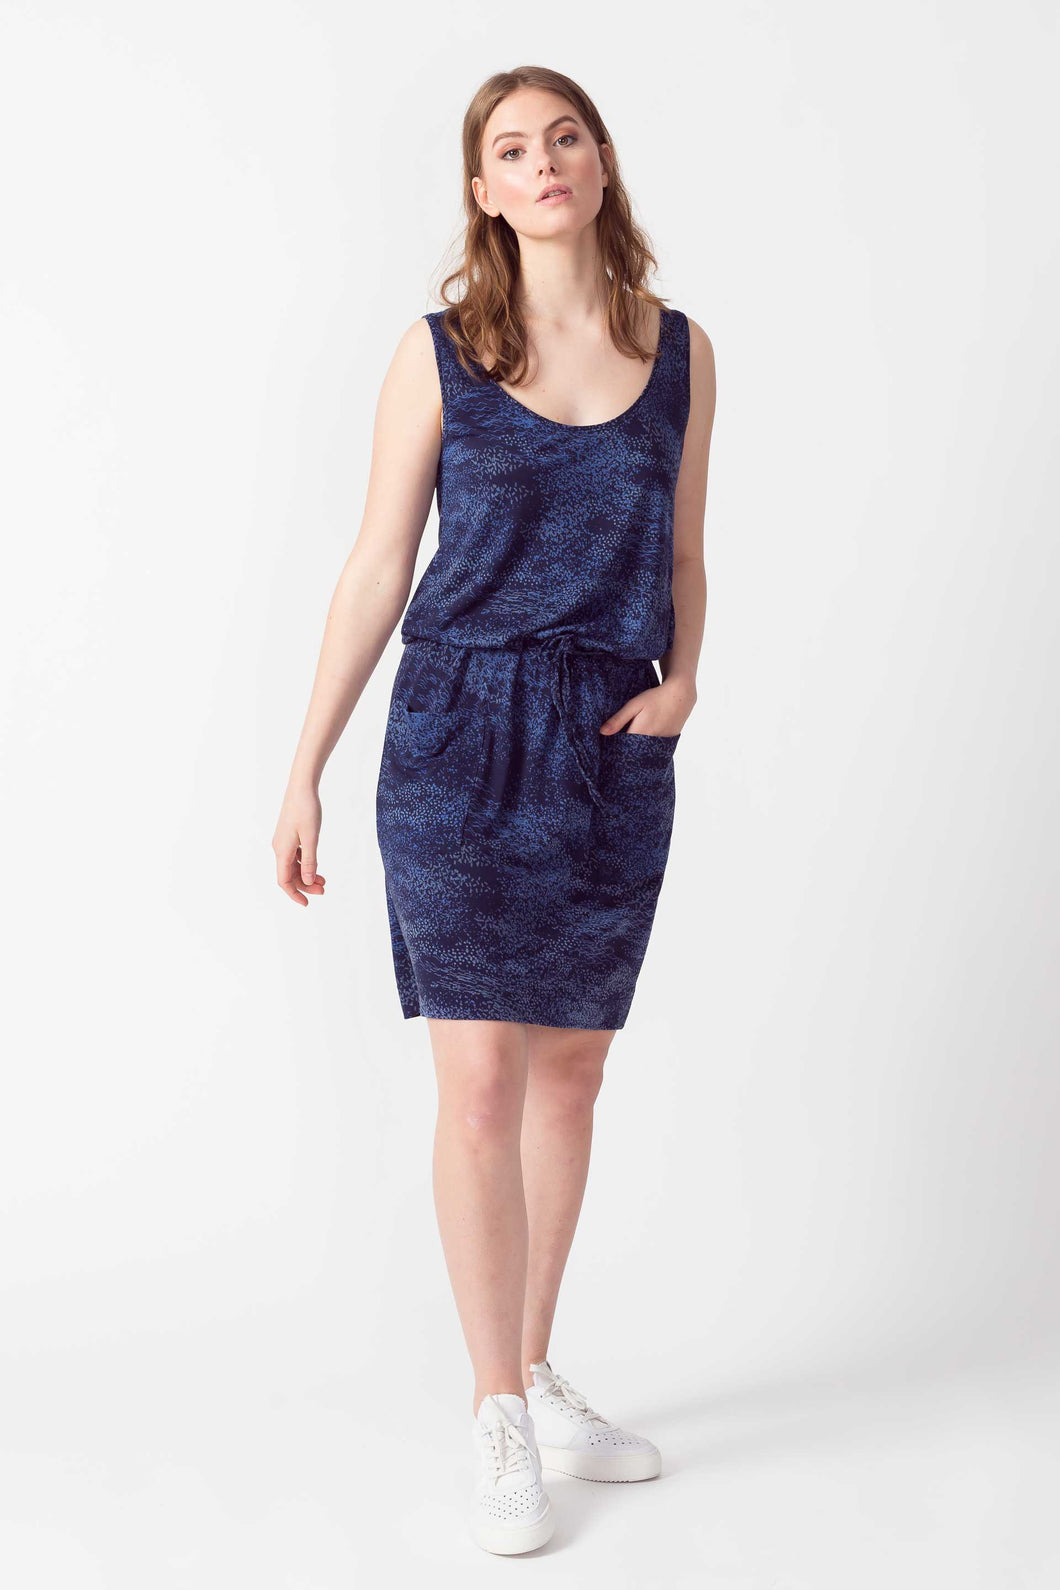 SKFK Zari casual jersey printed patch pocket vest dress in Blues - CW CW